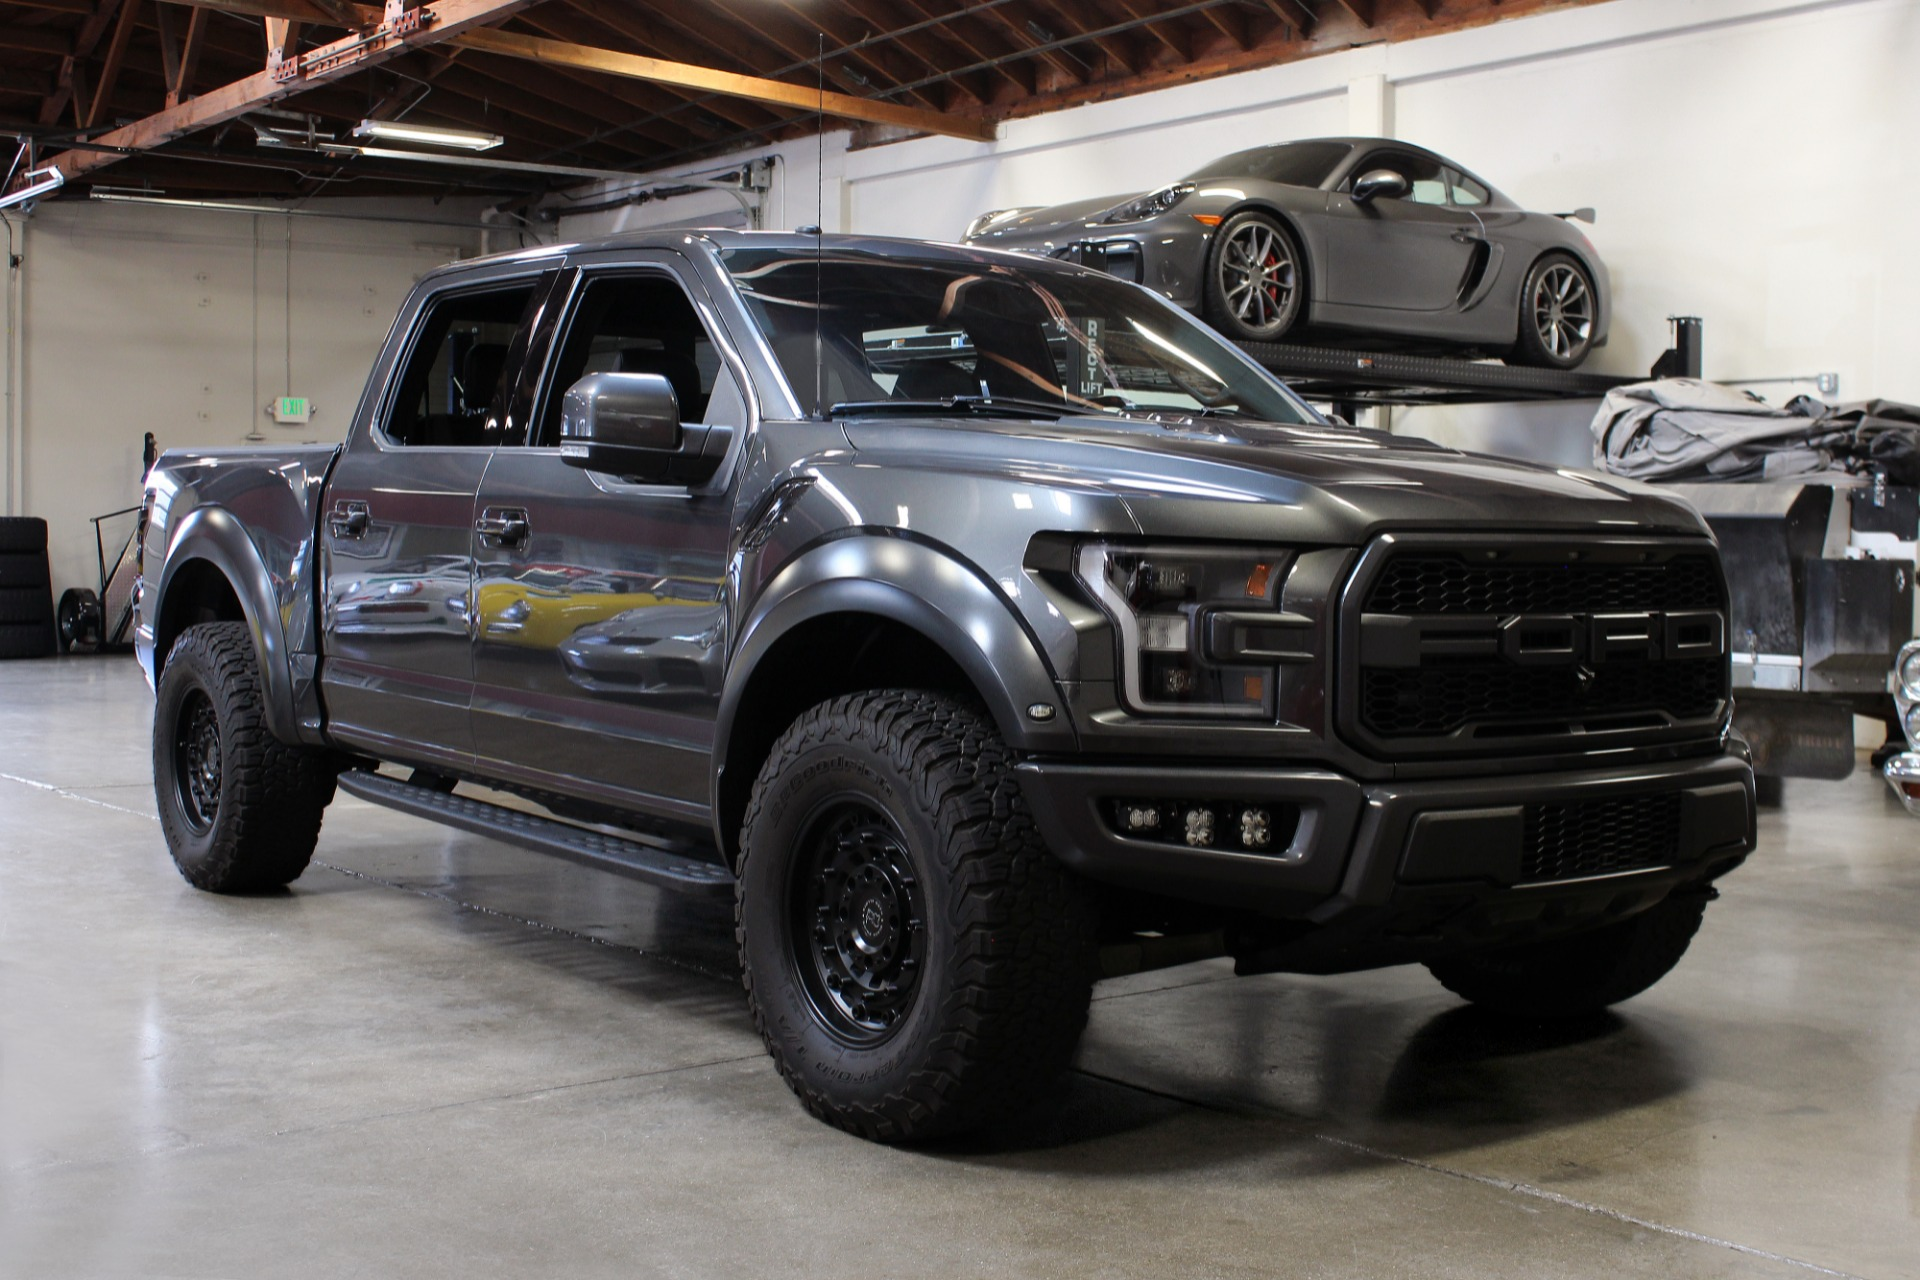 Used 2018 Ford F-150 Raptor Raptor for sale $69,995 at San Francisco Sports Cars in San Carlos CA 94070 1